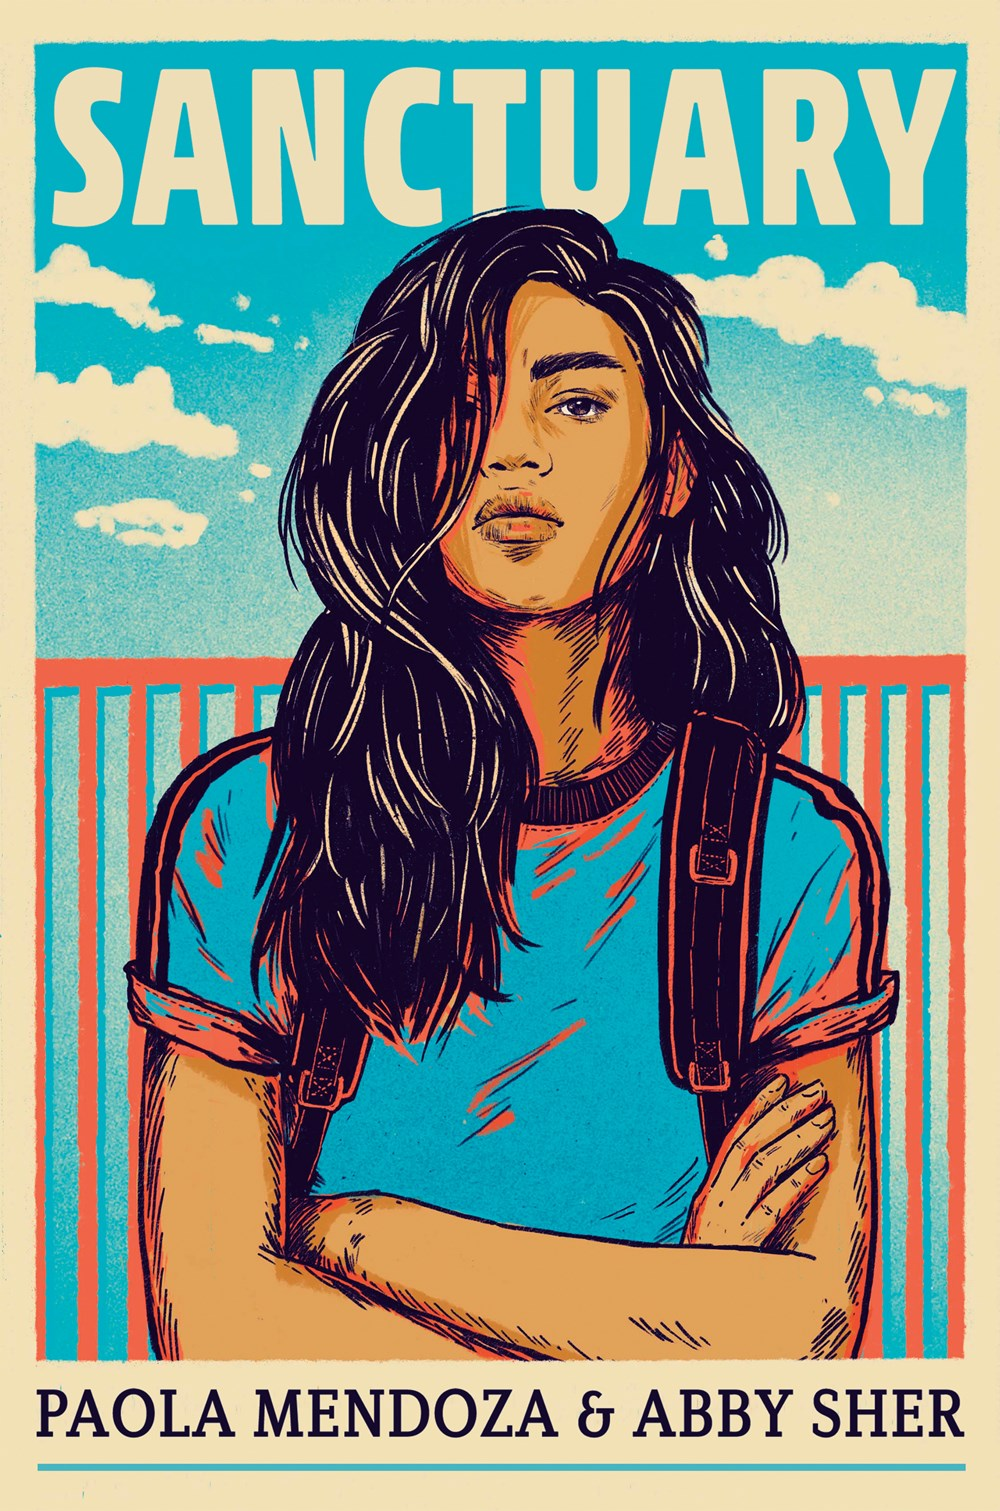 When Will Sanctuary By Paola Mendoza & Abby Sher Come Out? 2020 YA Science Fiction Releases